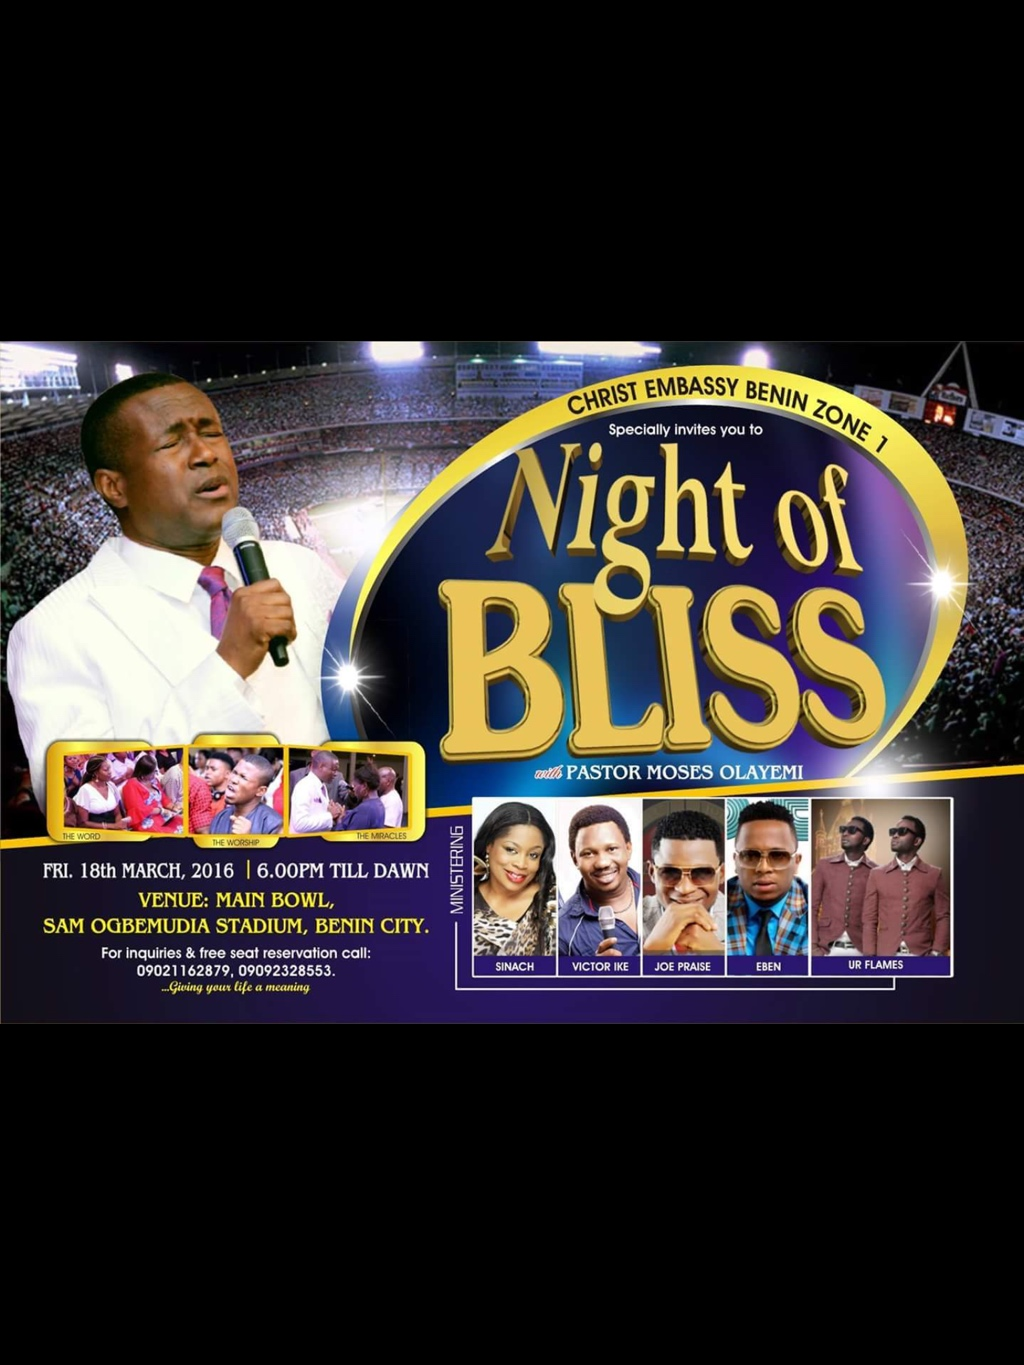 #Nightofblissbenin avatar picture